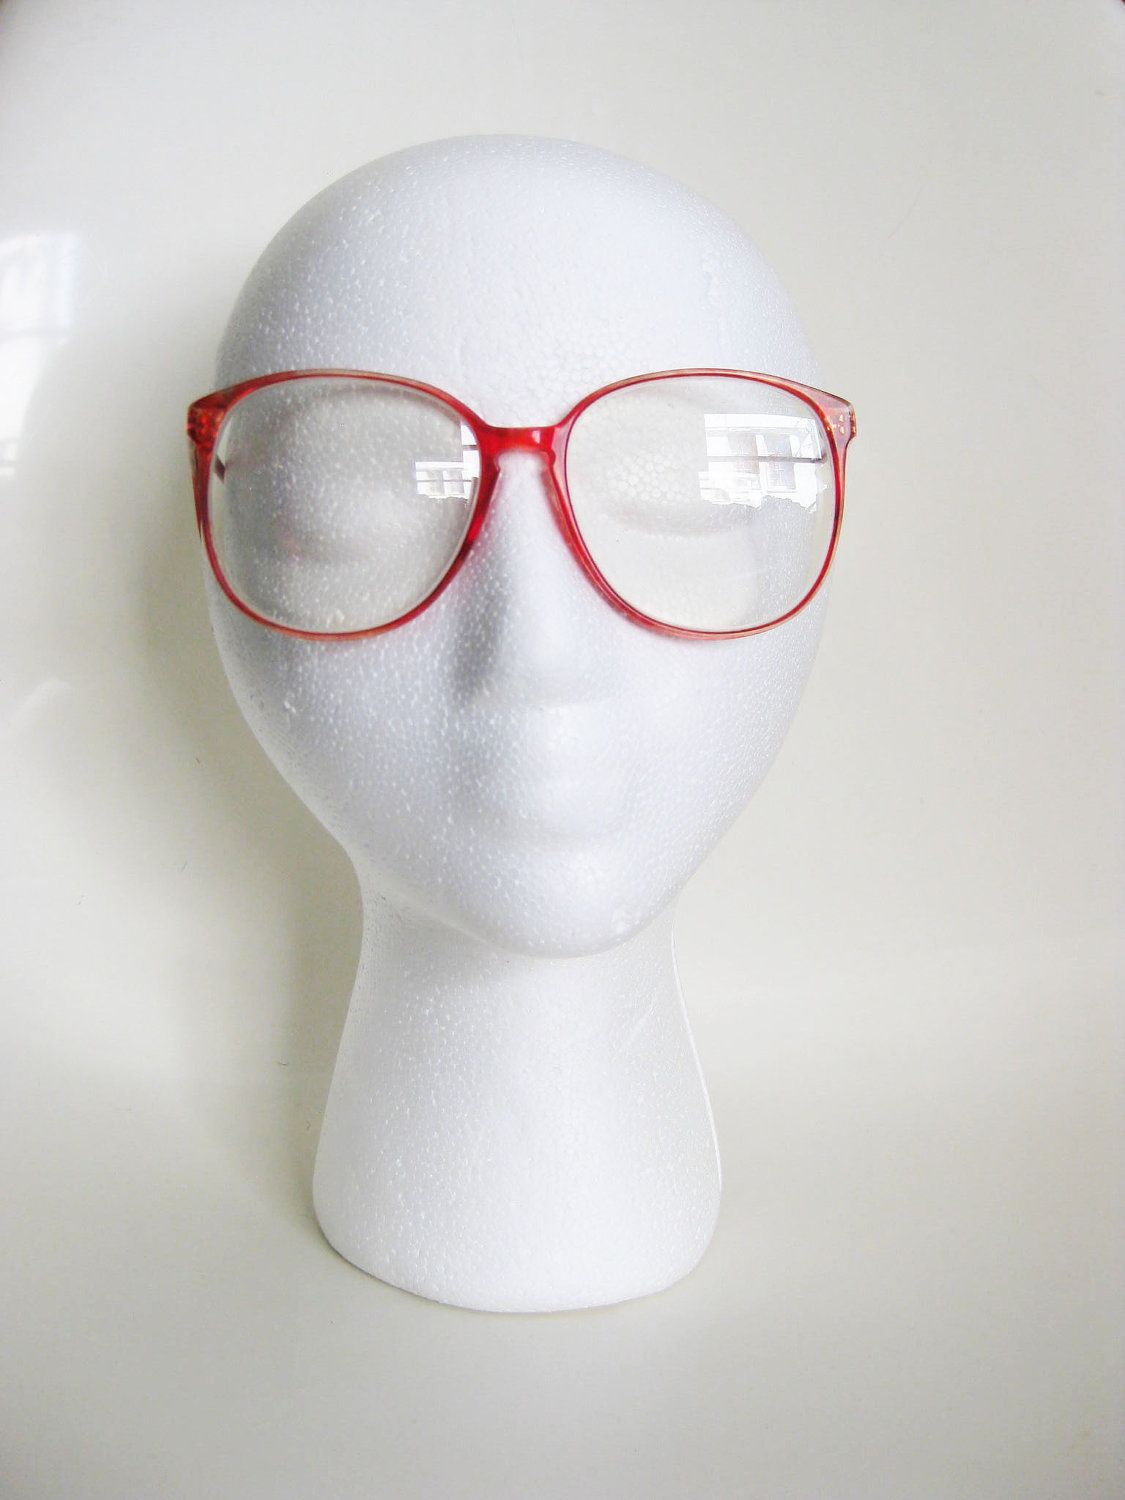 Vintage CHERRY RED Glasses Eyeglasses ROUND 1980s Sunglasses Oversized Eighties Large Indie Hipster. $38.00, via Etsy.